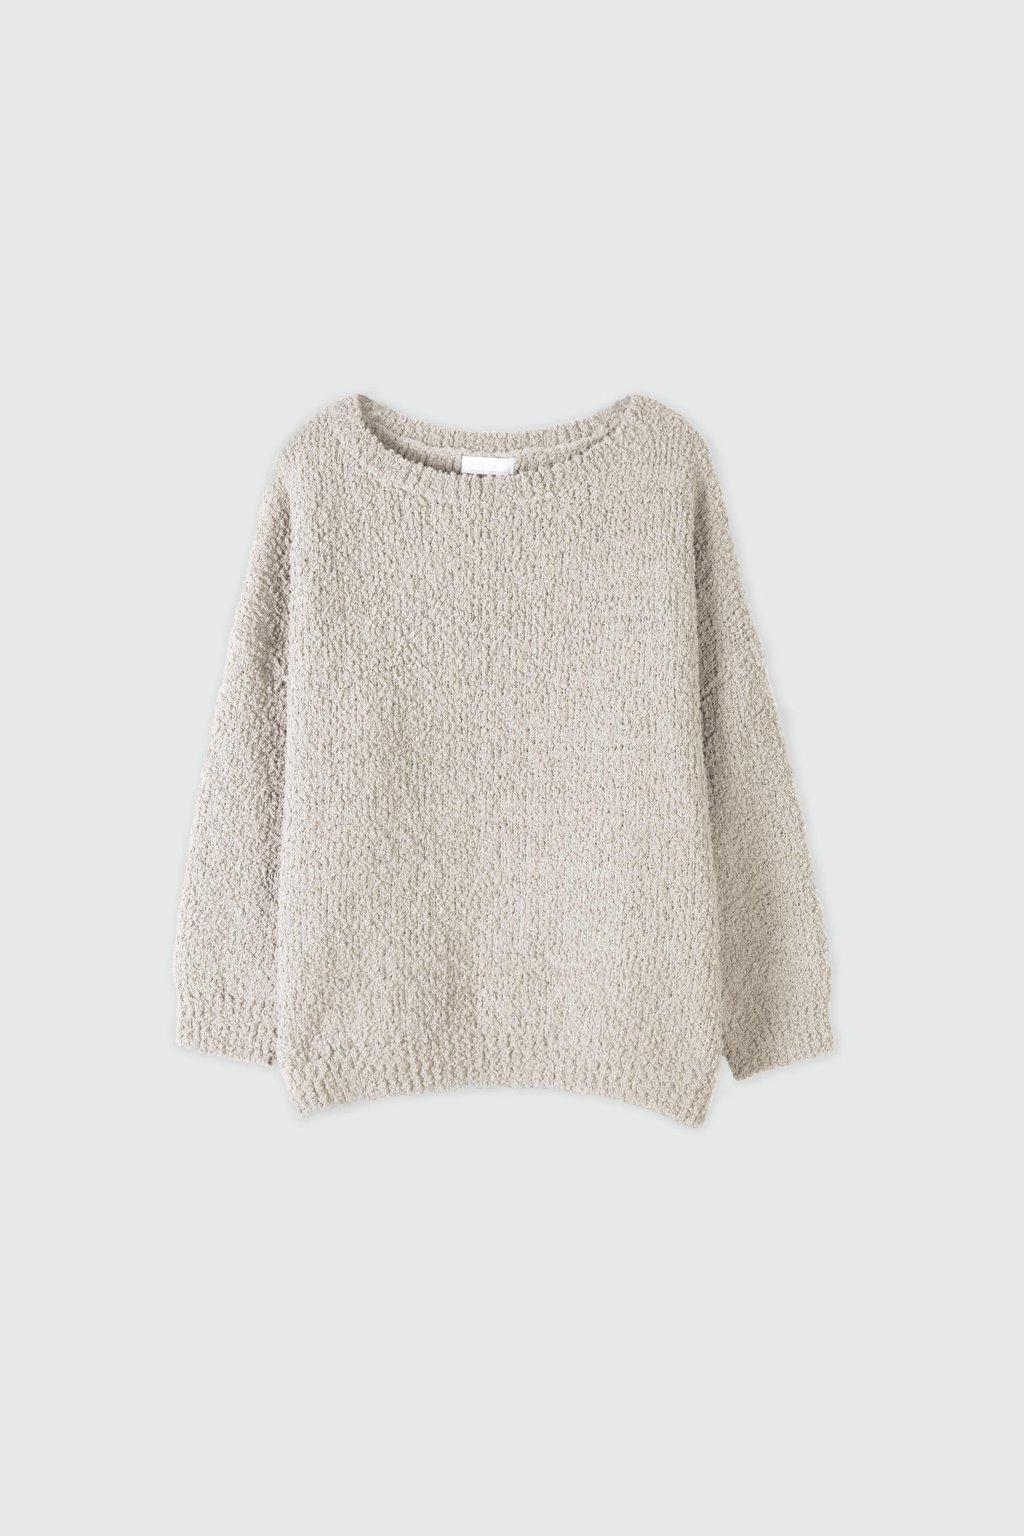 Sweater 3082 Oatmeal 6